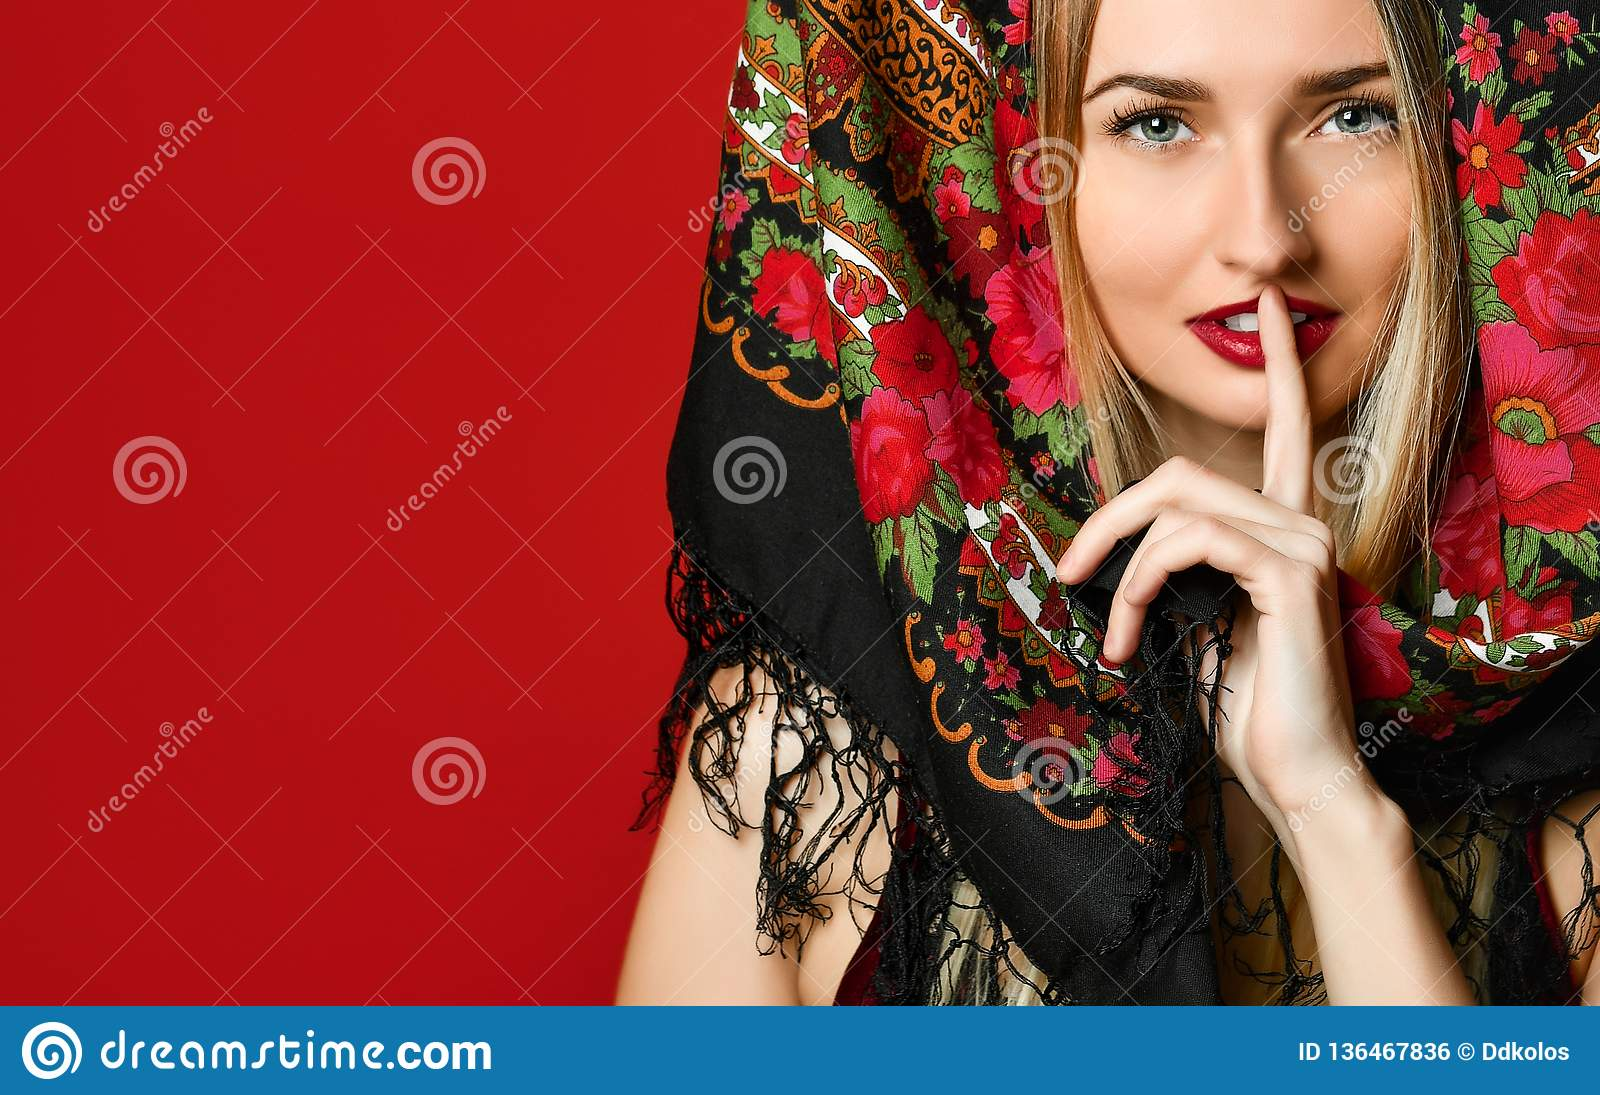 Shot of beautiful female with long blonde hair wears kokoshnik cap and patterned shawl, shows hush sign